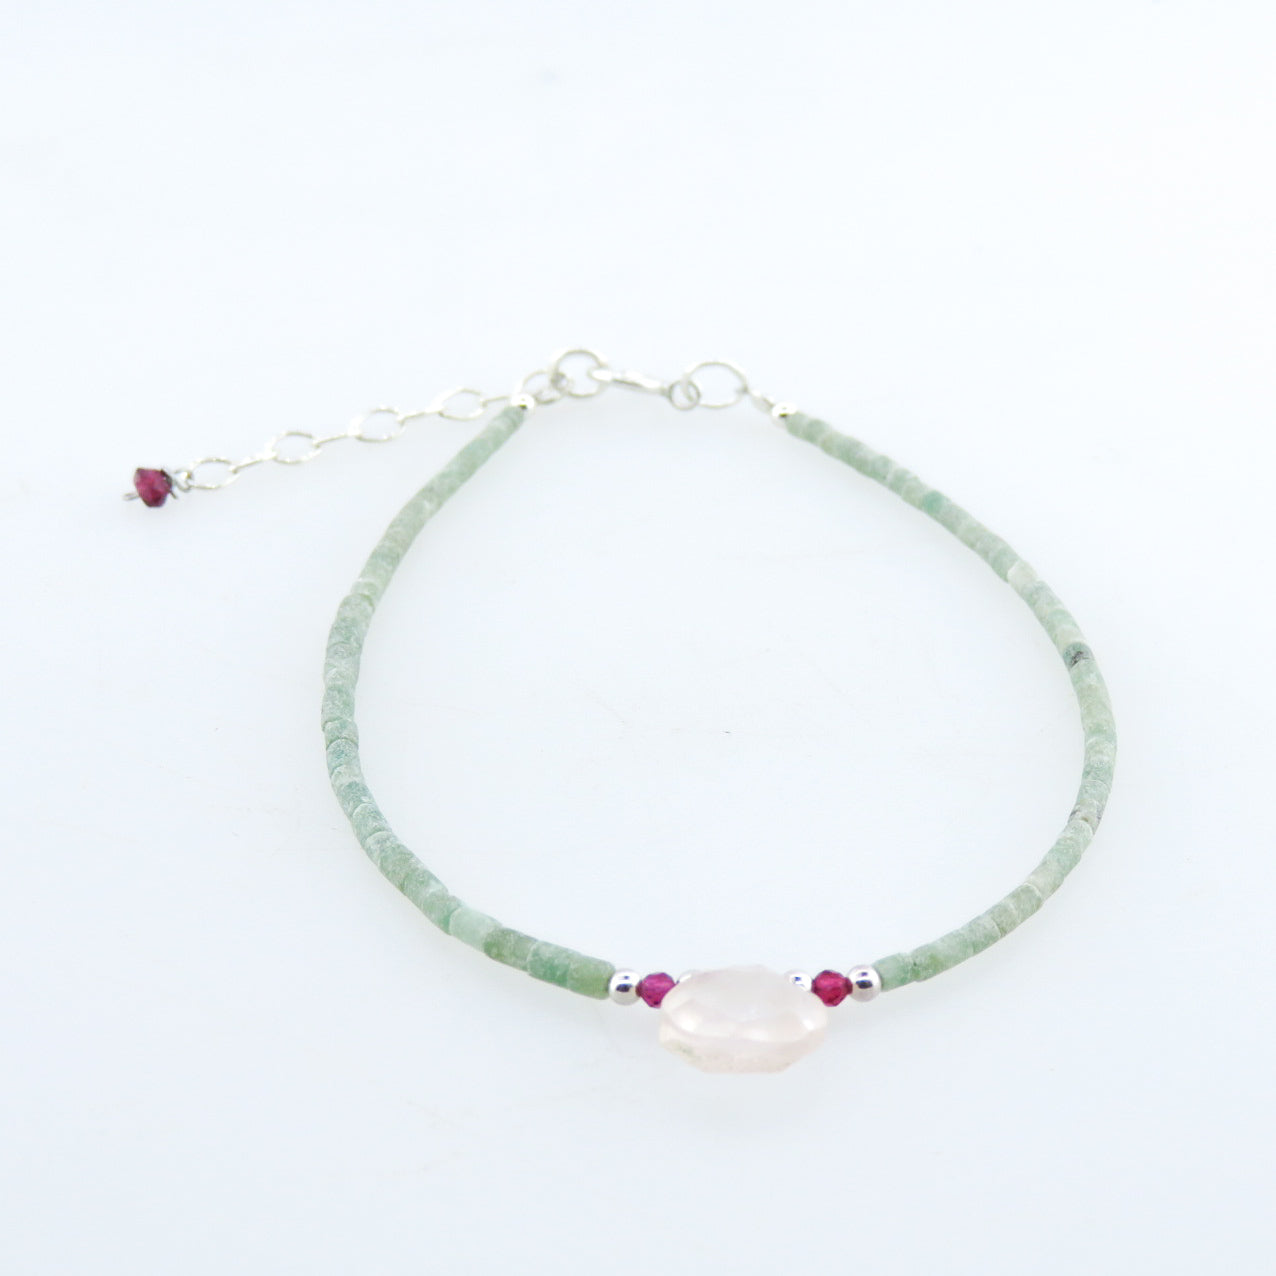 Jade Bracelet with Rose Quartz, Garnet and Silver Beads